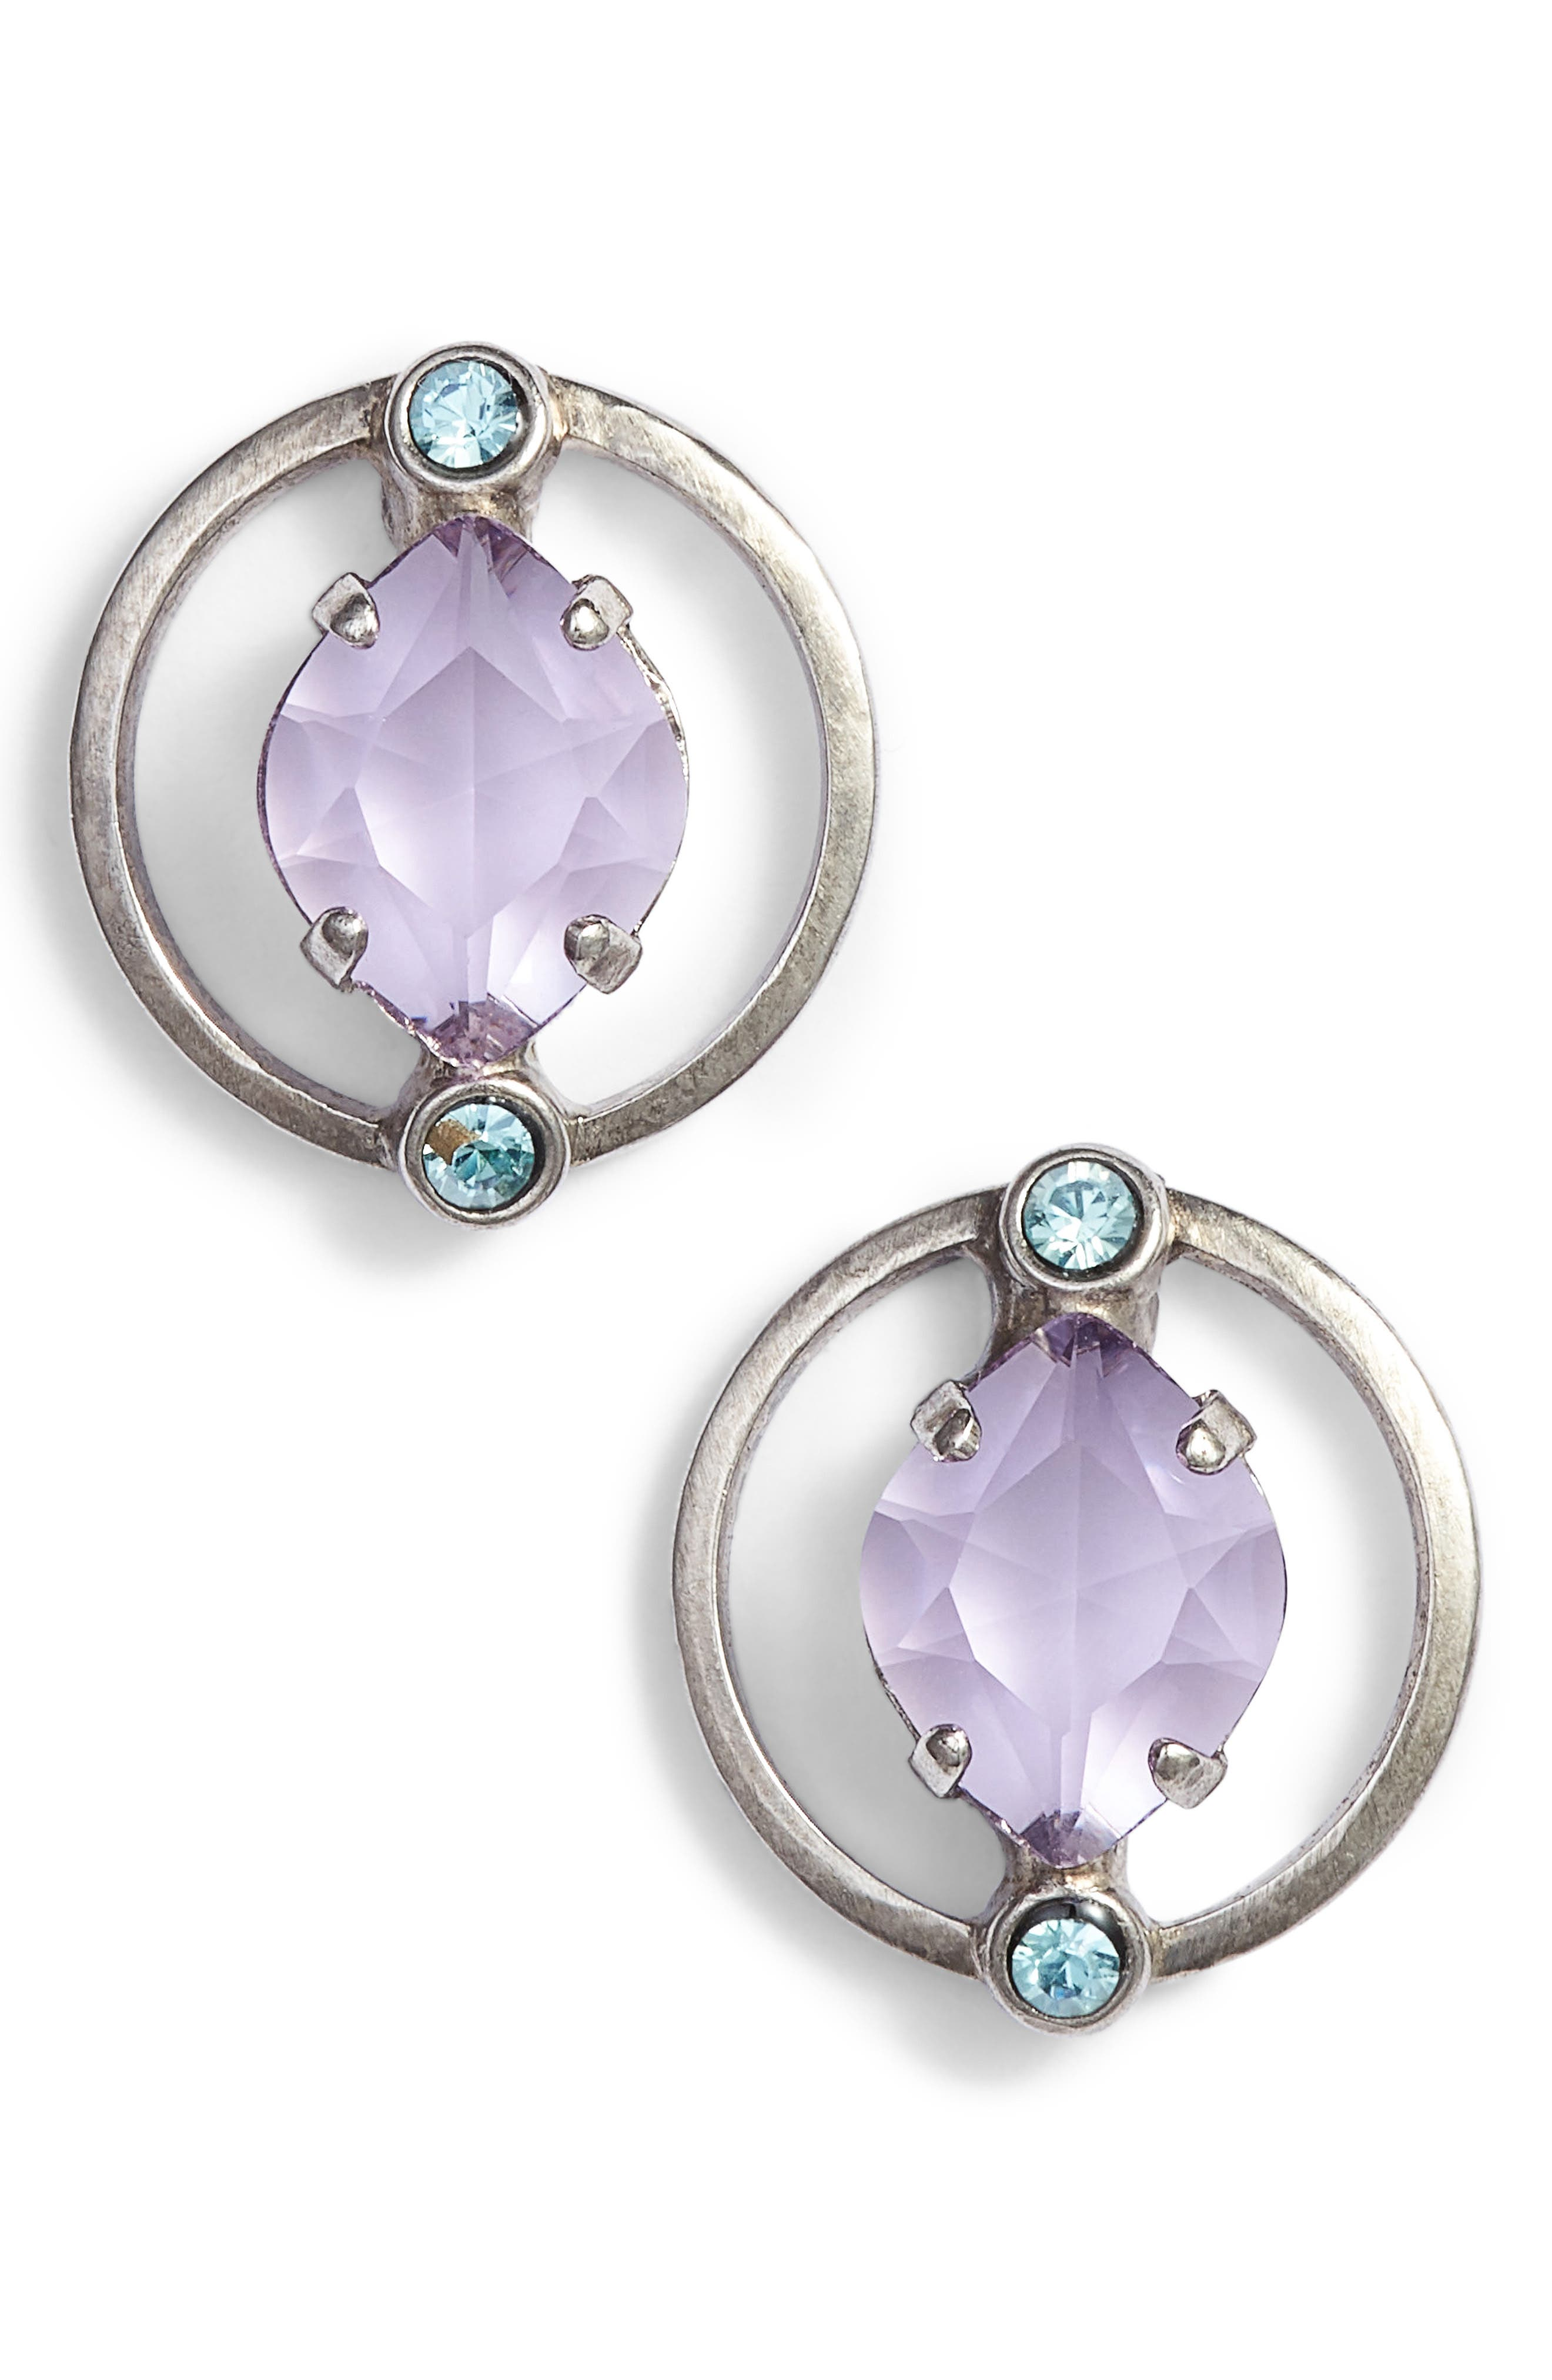 Tiger Lily Crystal Earrings,                             Main thumbnail 1, color,                             PURPLE